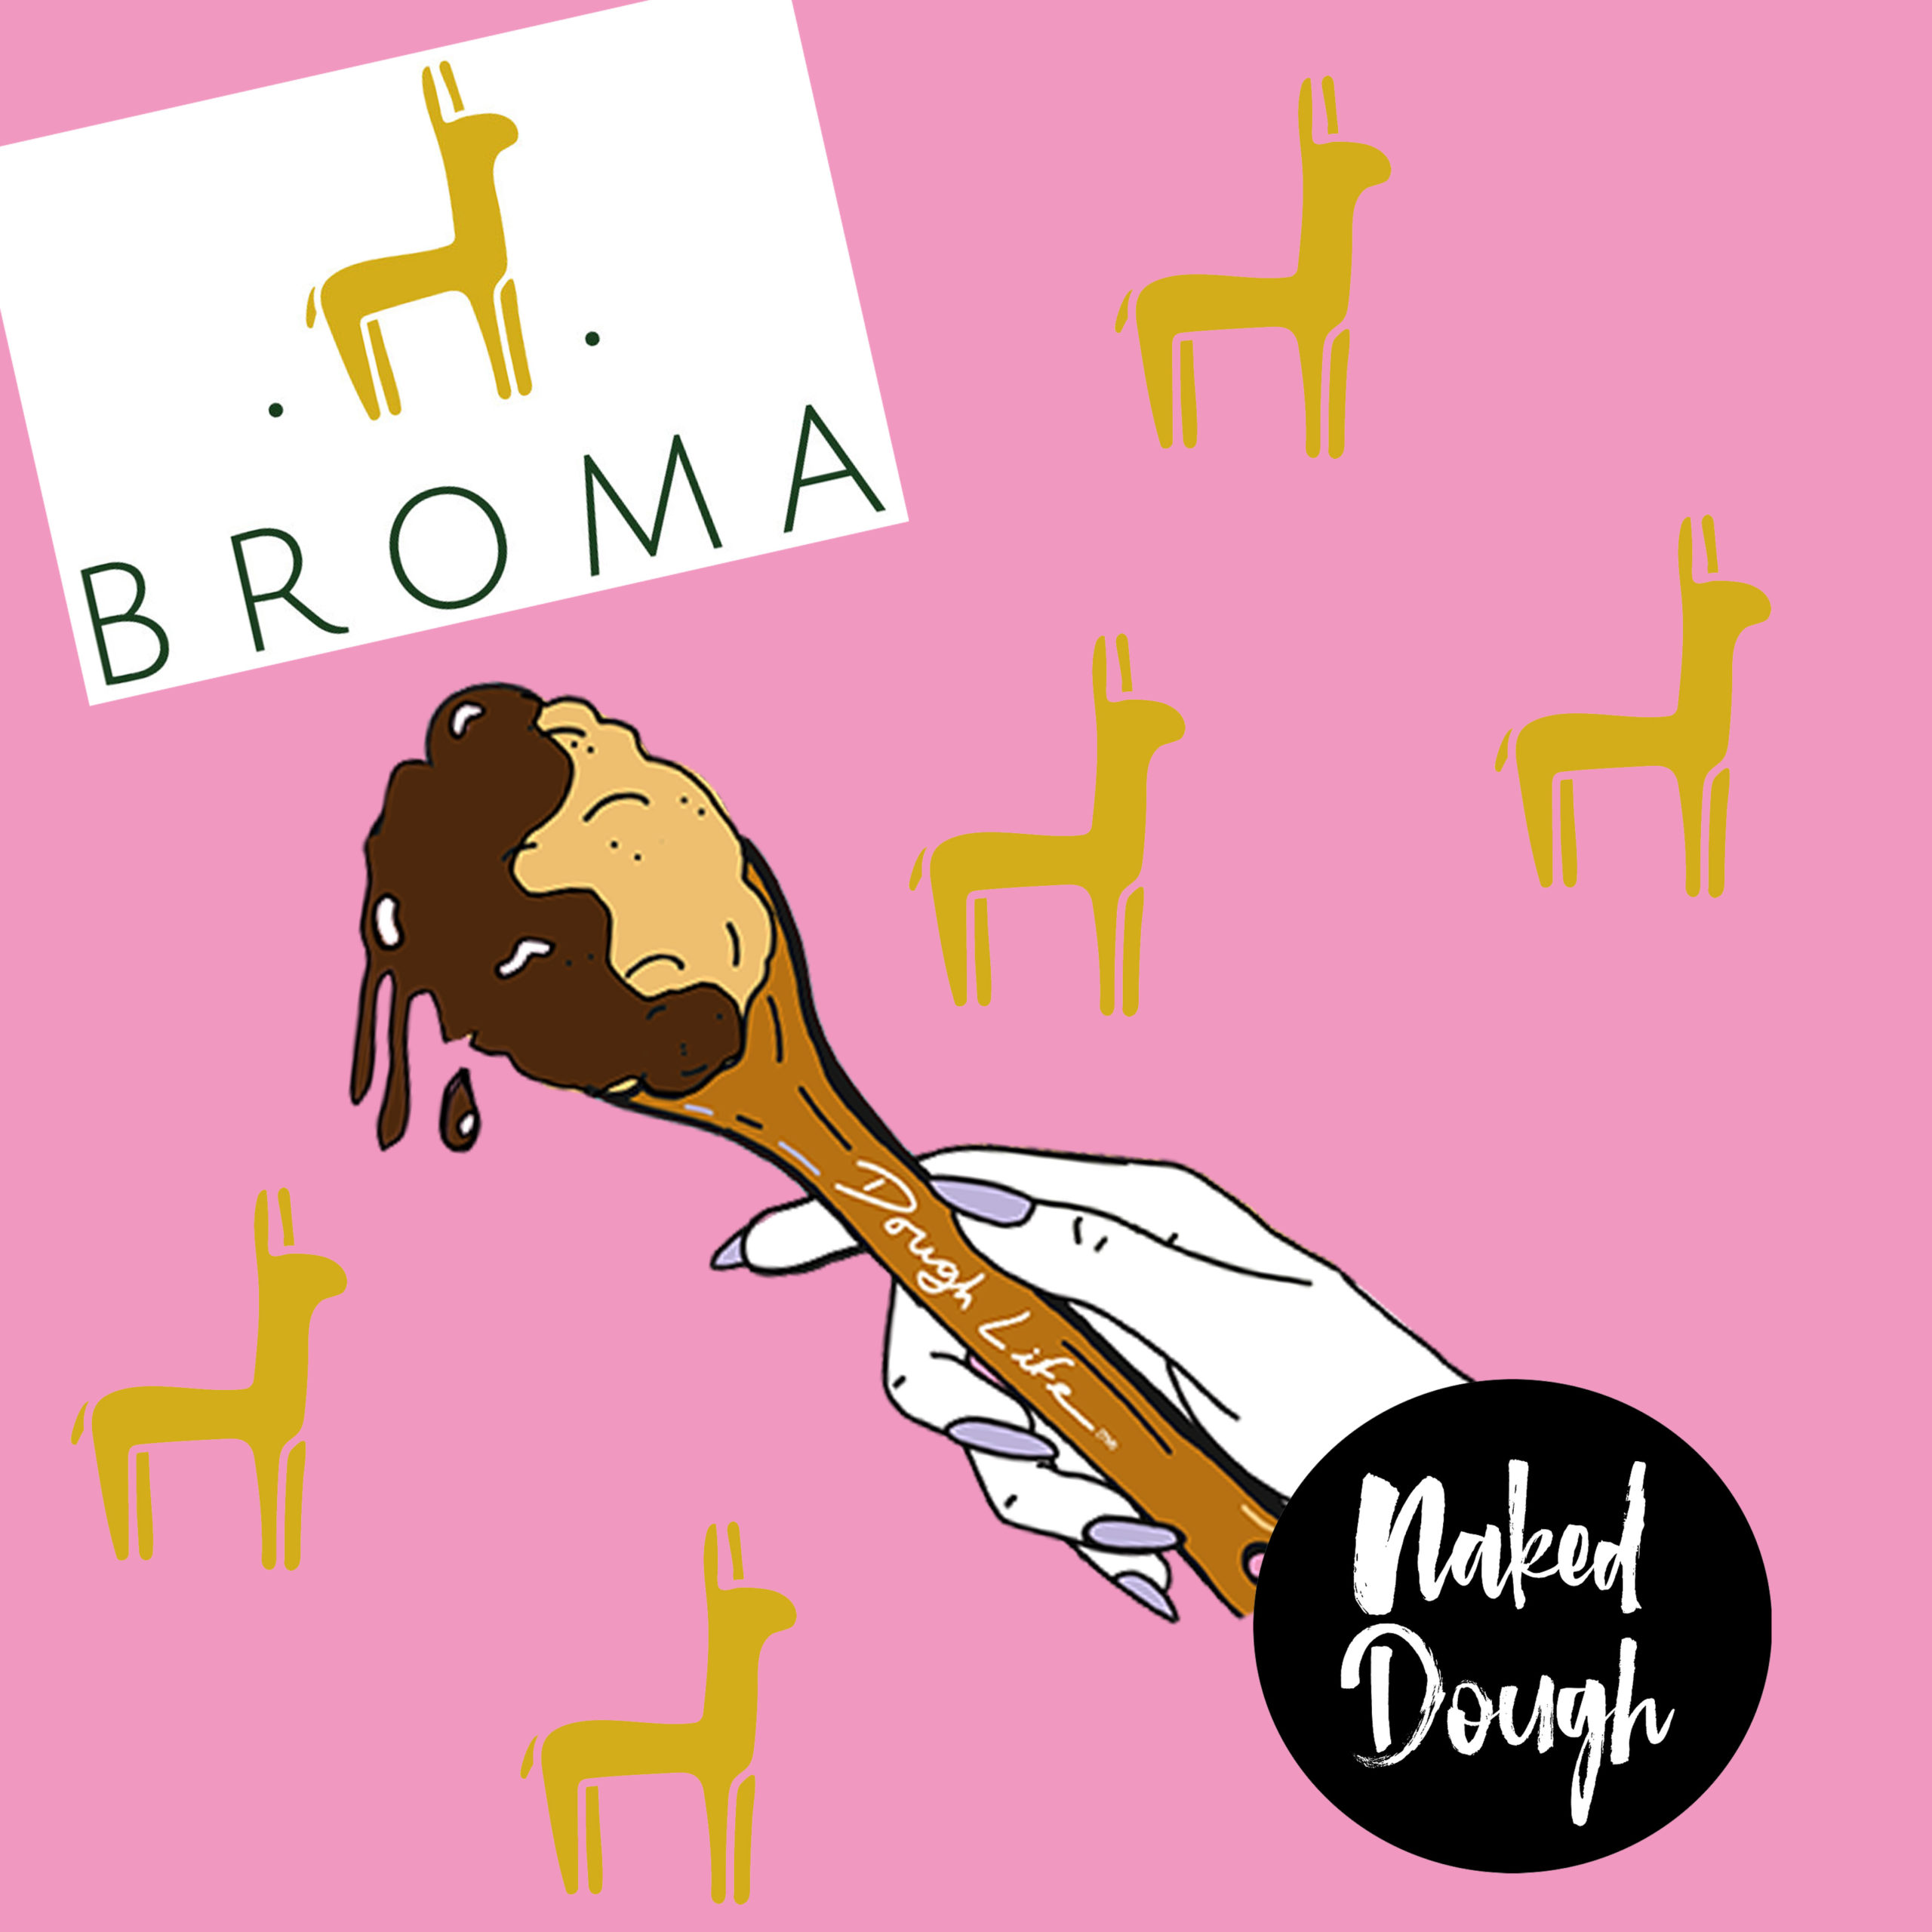 Limited Edition Broma Sauce Cookie Dough.